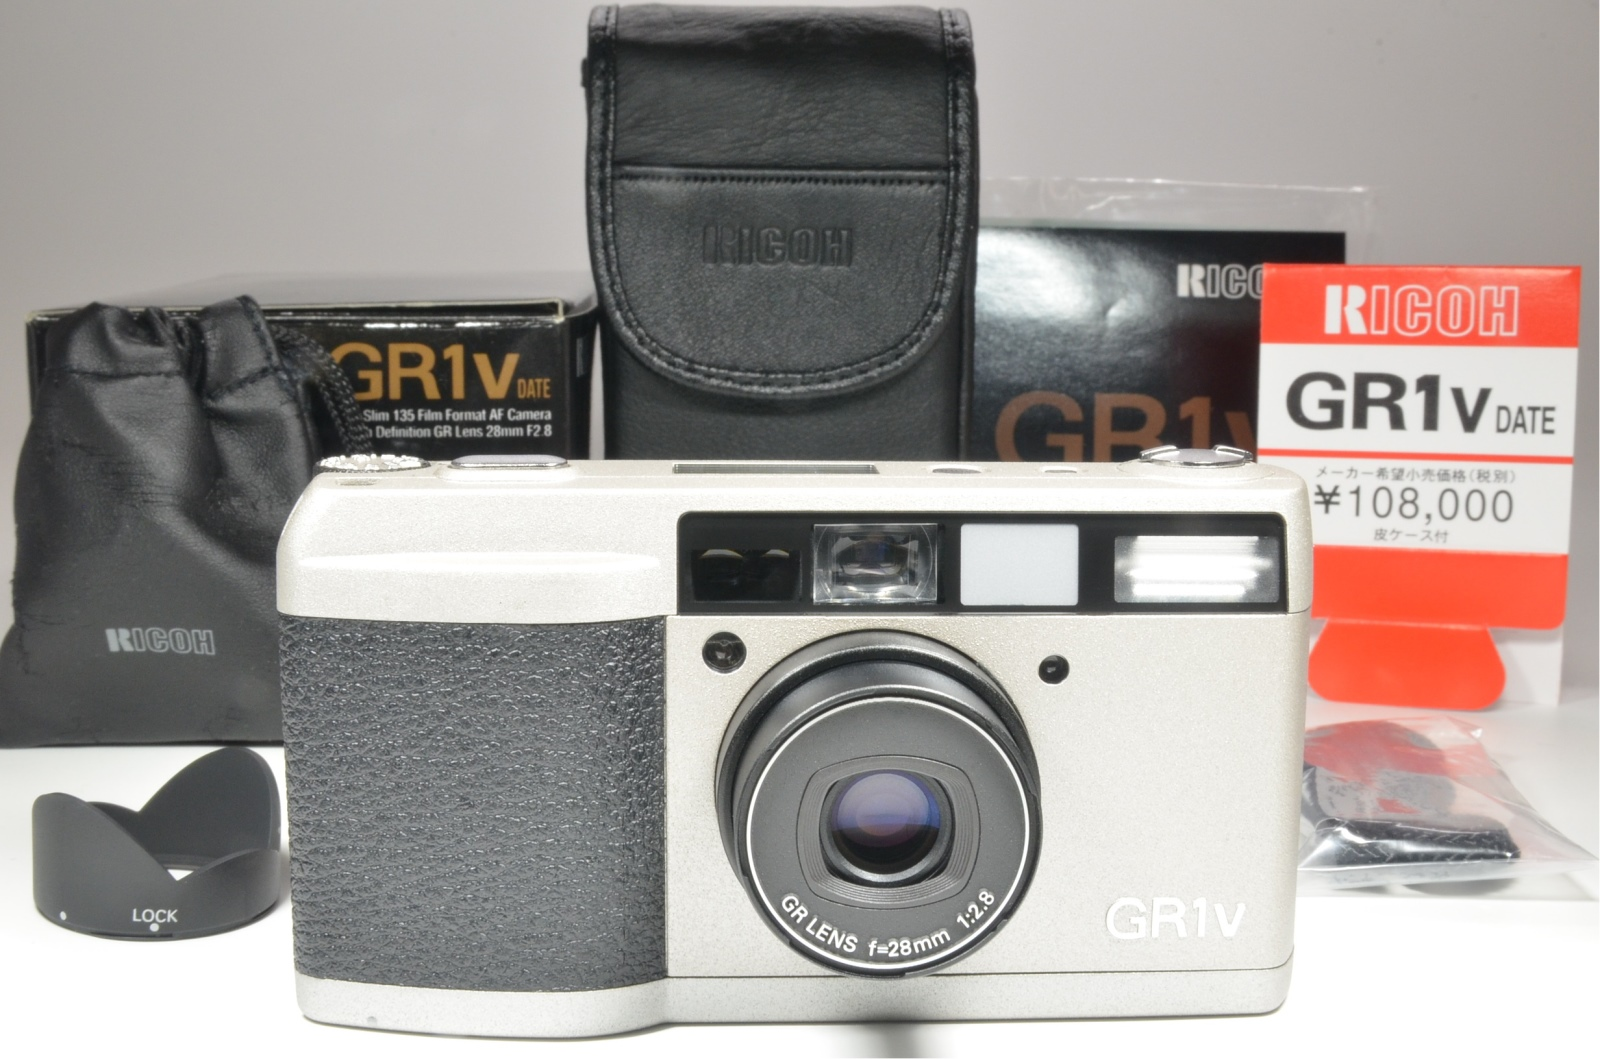 ricoh gr1v date p&s 35mm film camera 28mm f2.8 outlet item